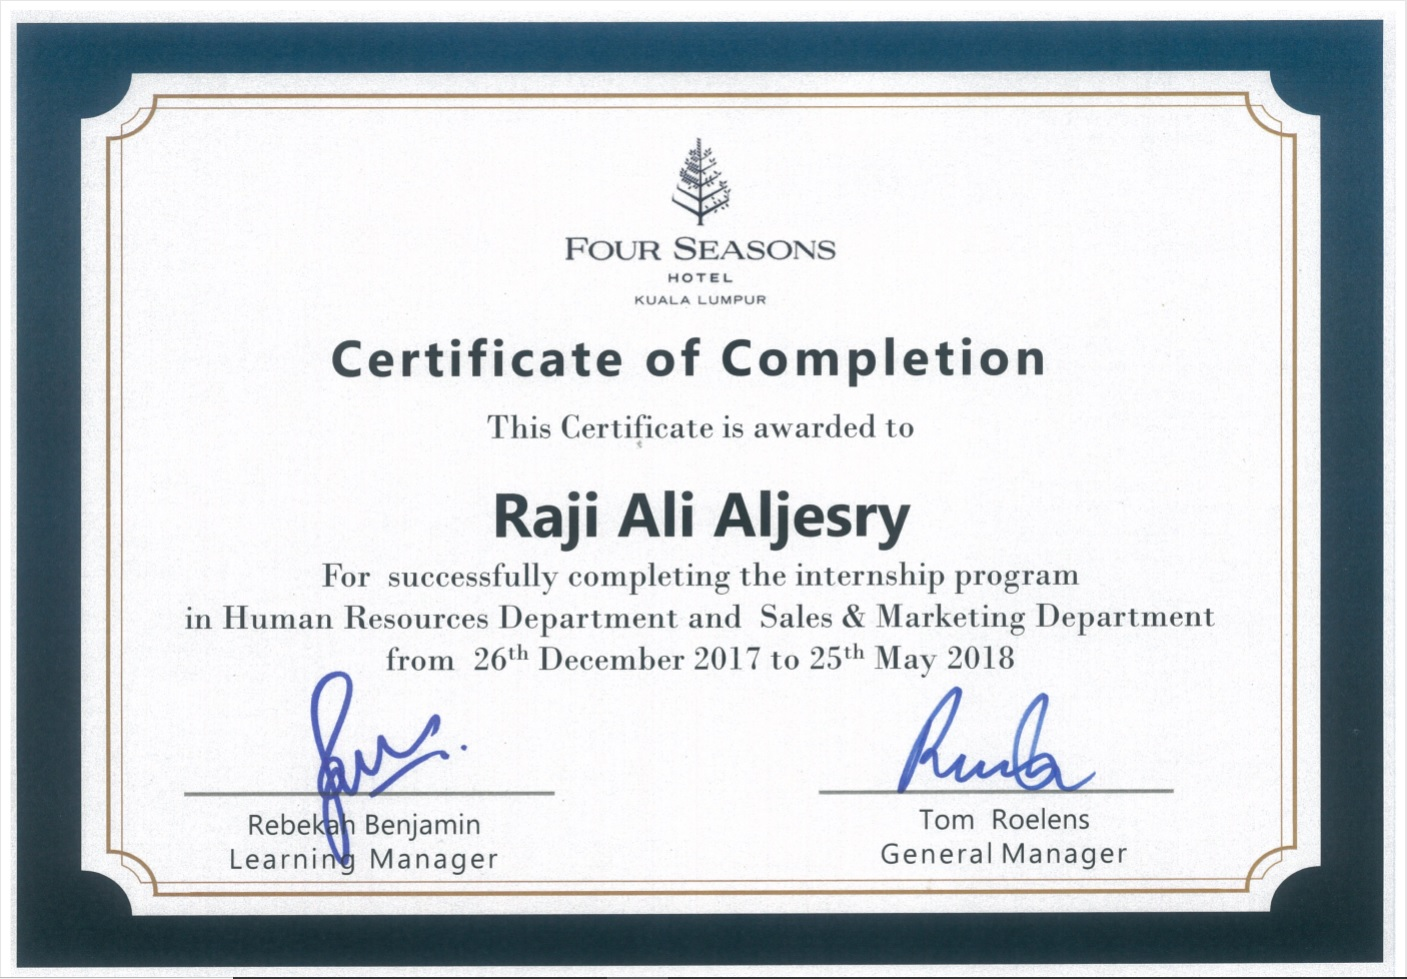 Four Seasons Certificate of Completion.jpg